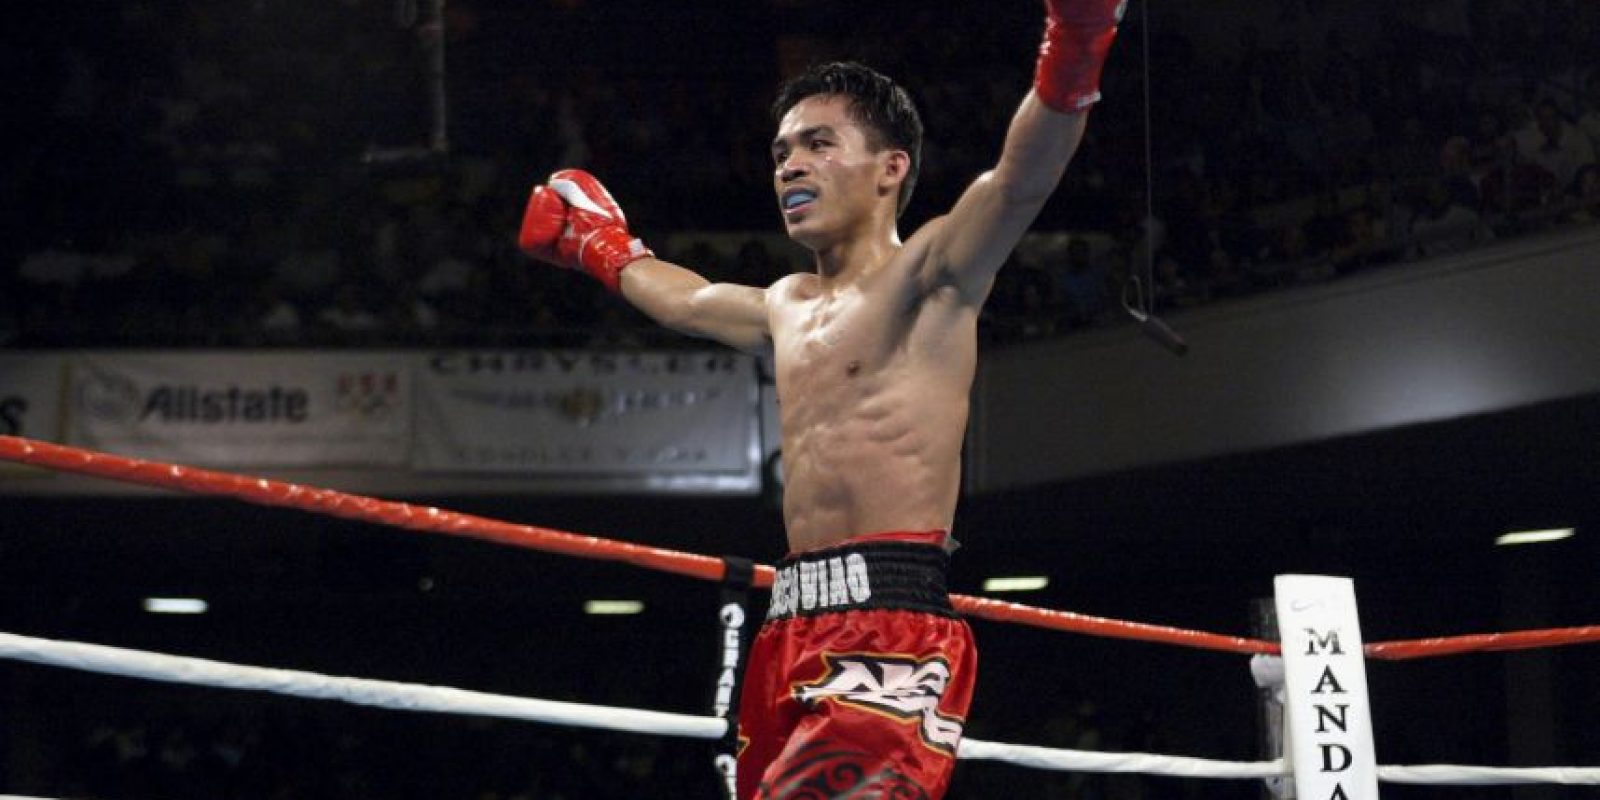 """Pacman"" en 2003 Foto: Getty Images"